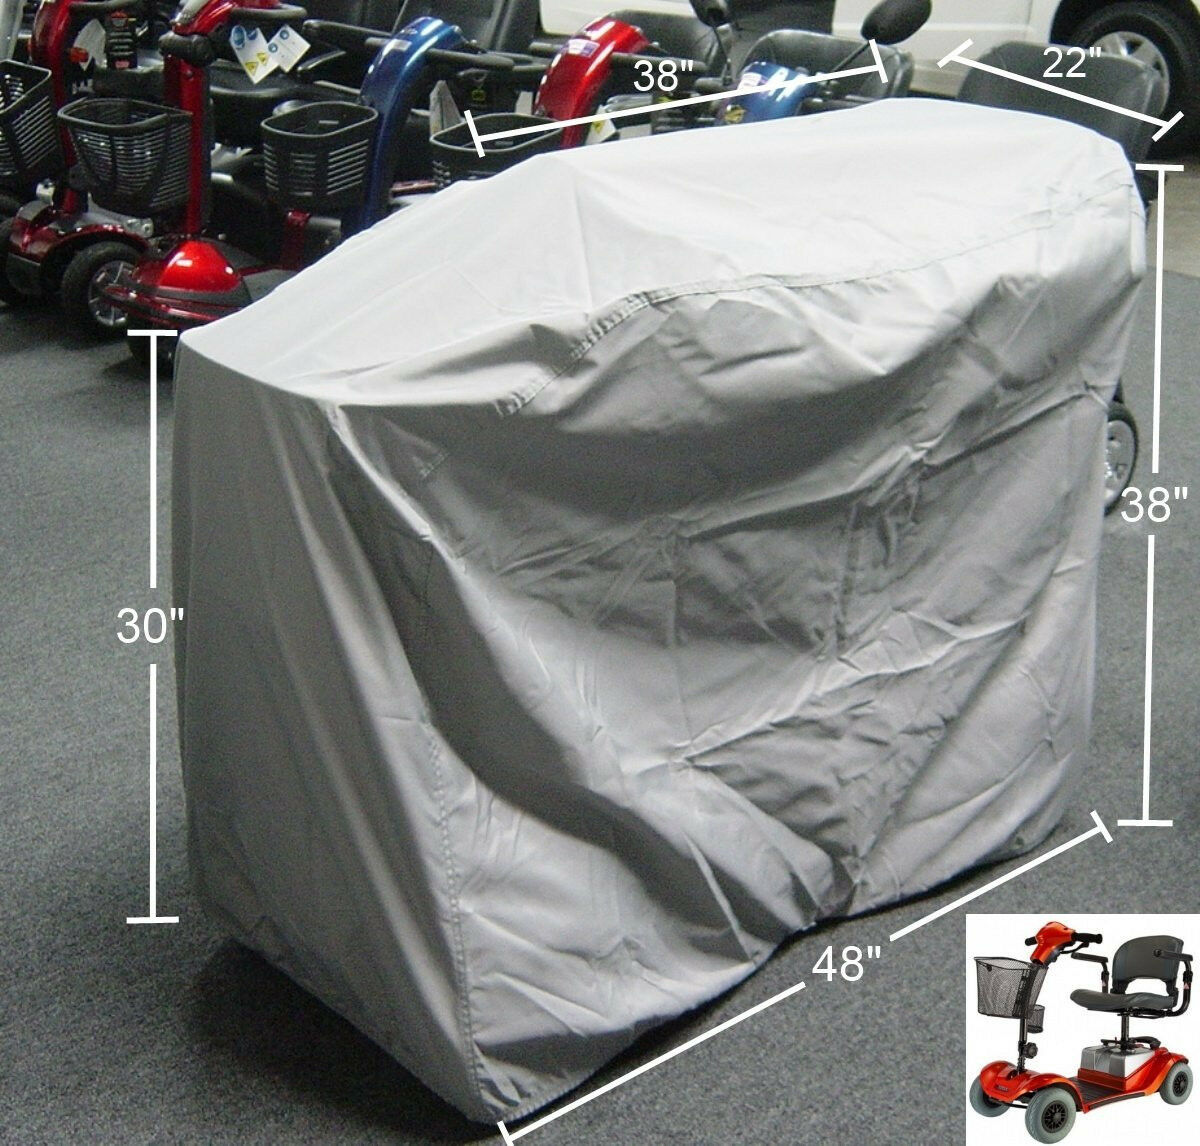 Mobility Scooter Storage Cover 48 L x 22 D x 38 H